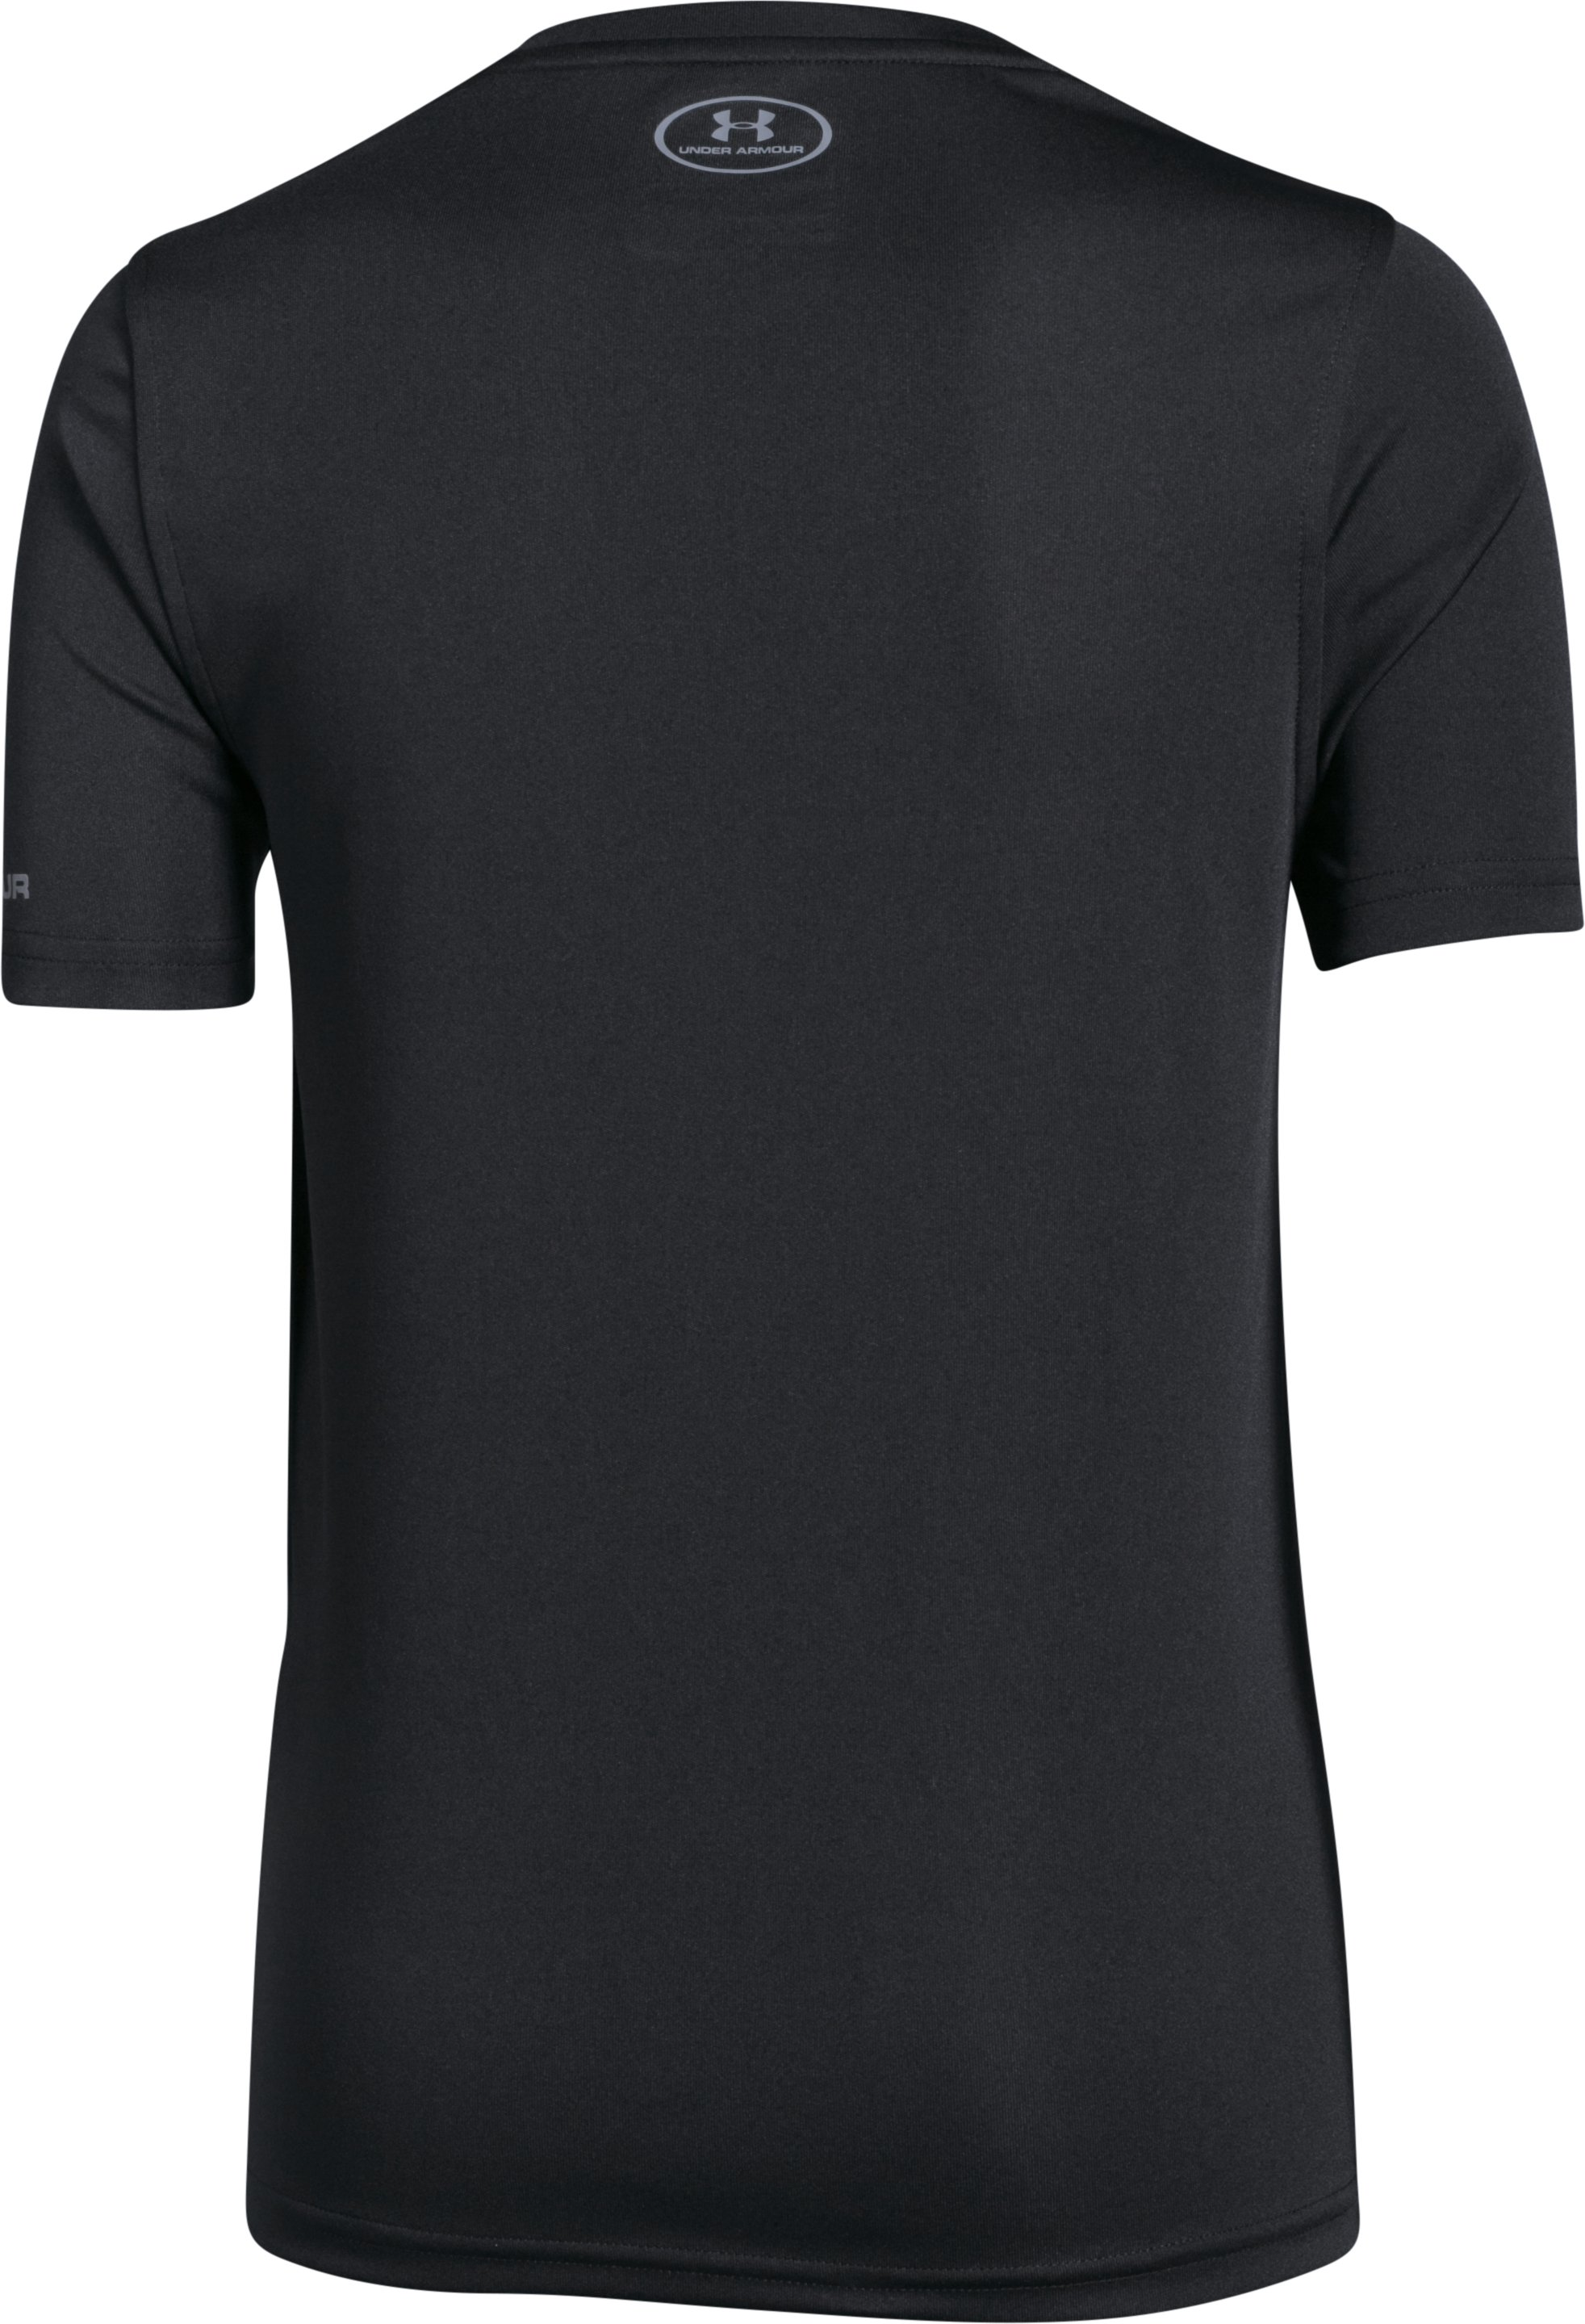 Boys' UA Challenger Training Shirt, Black , undefined